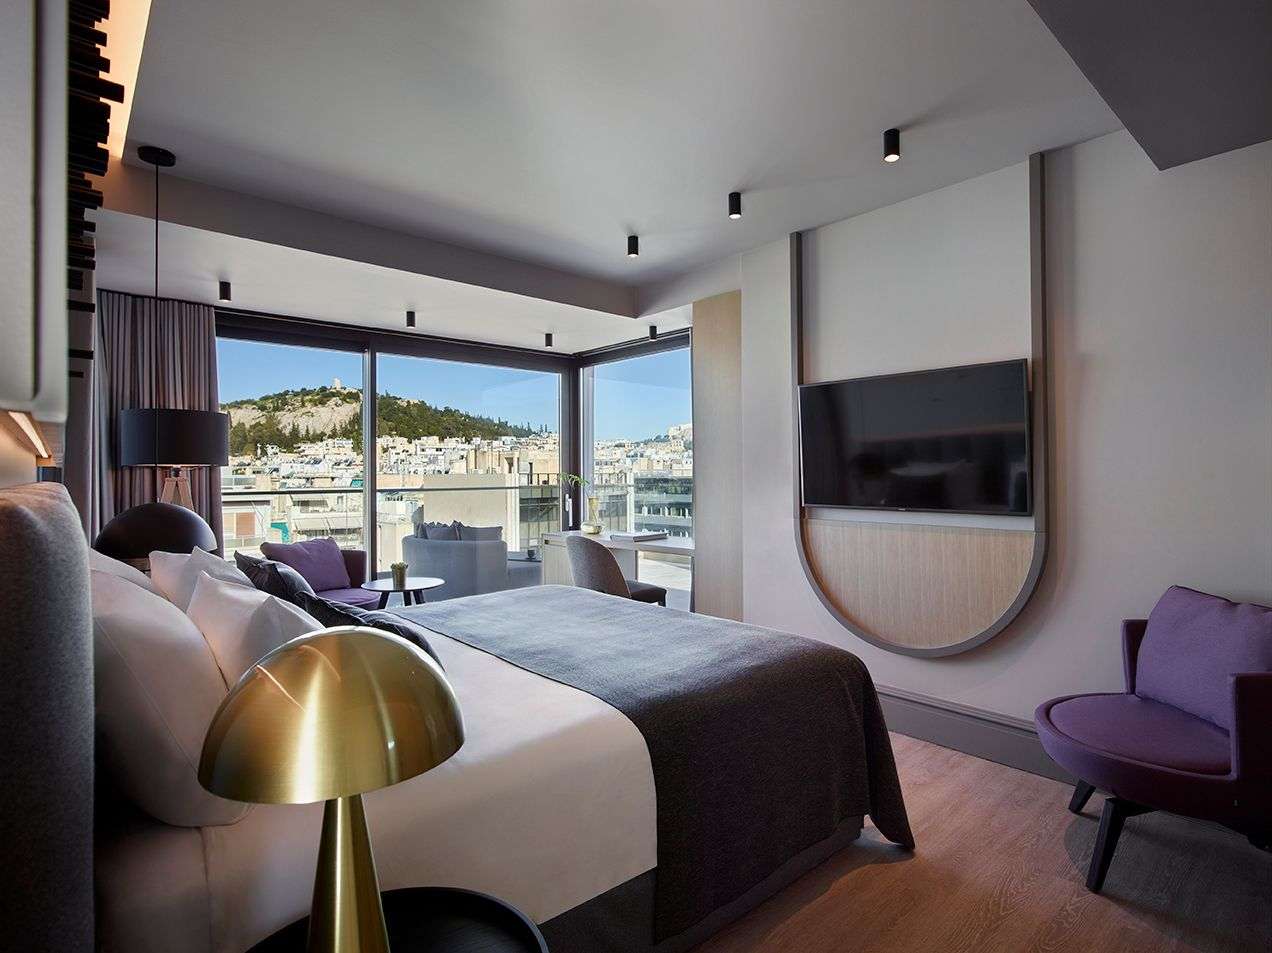 4* Heritage Hill Hotel - Αθήνα ✦ -44% ✦ 3 Ημέρες (2